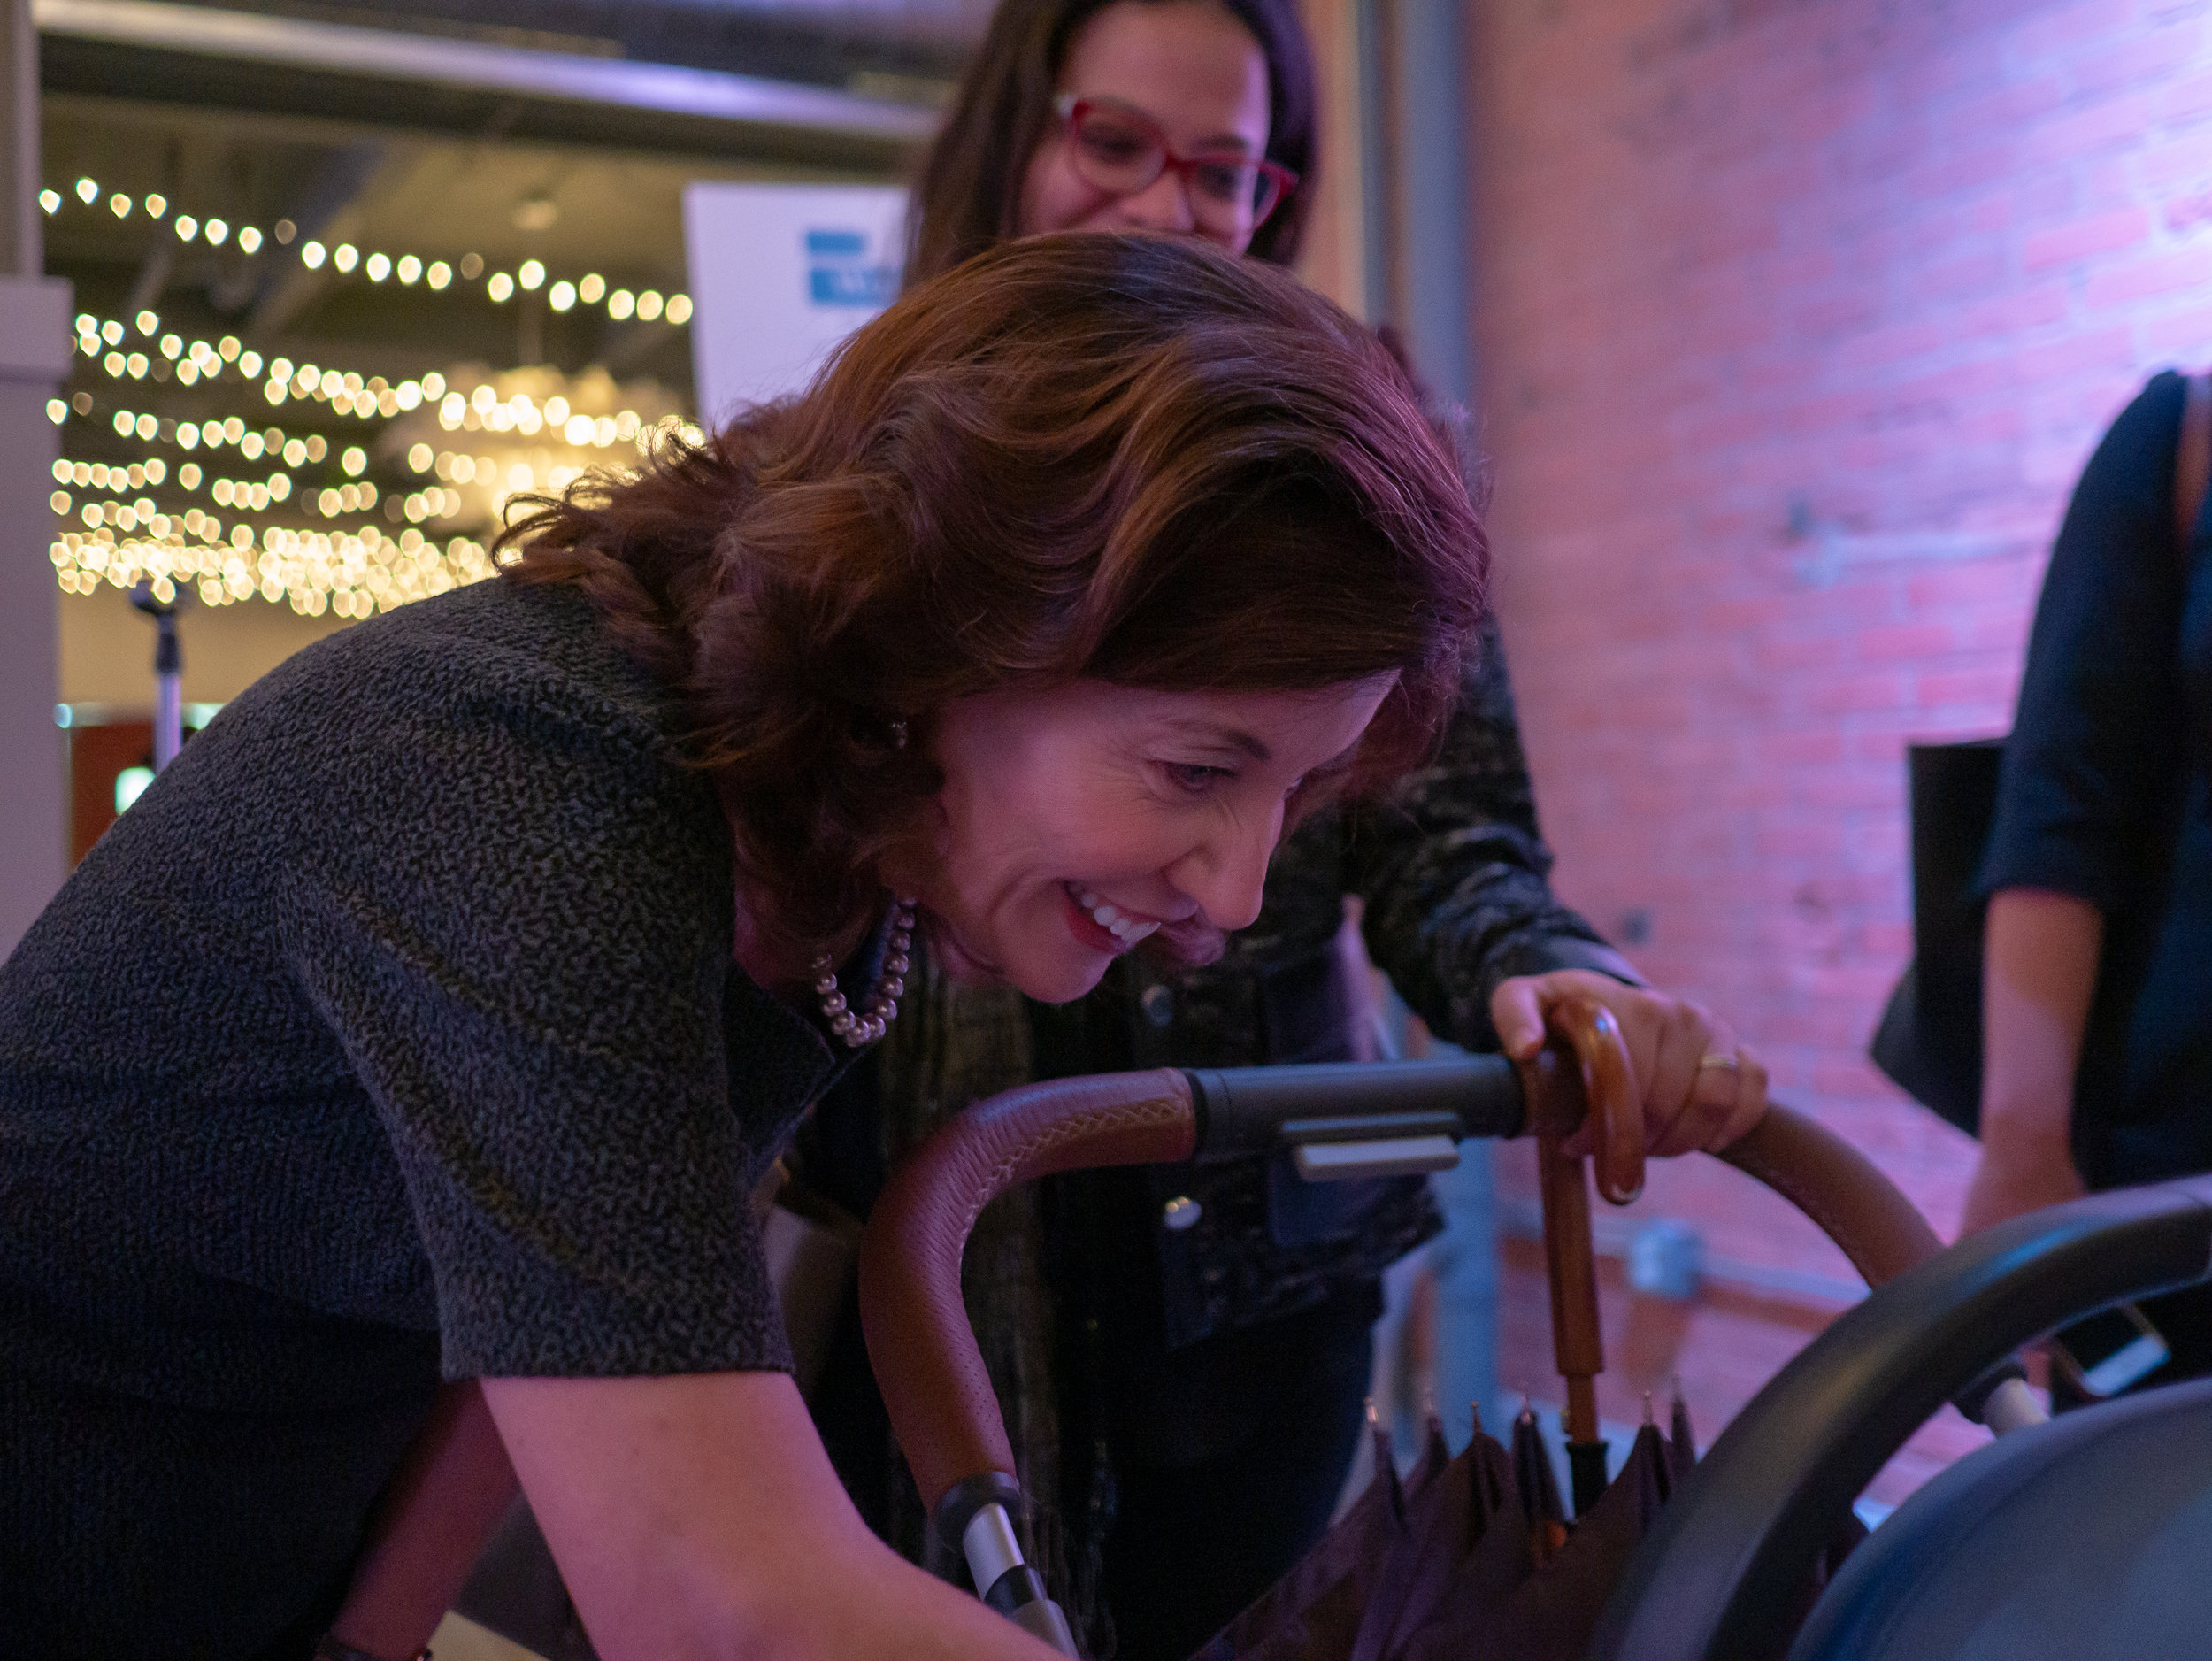 Kathy Hochul smiling at baby in a stroller